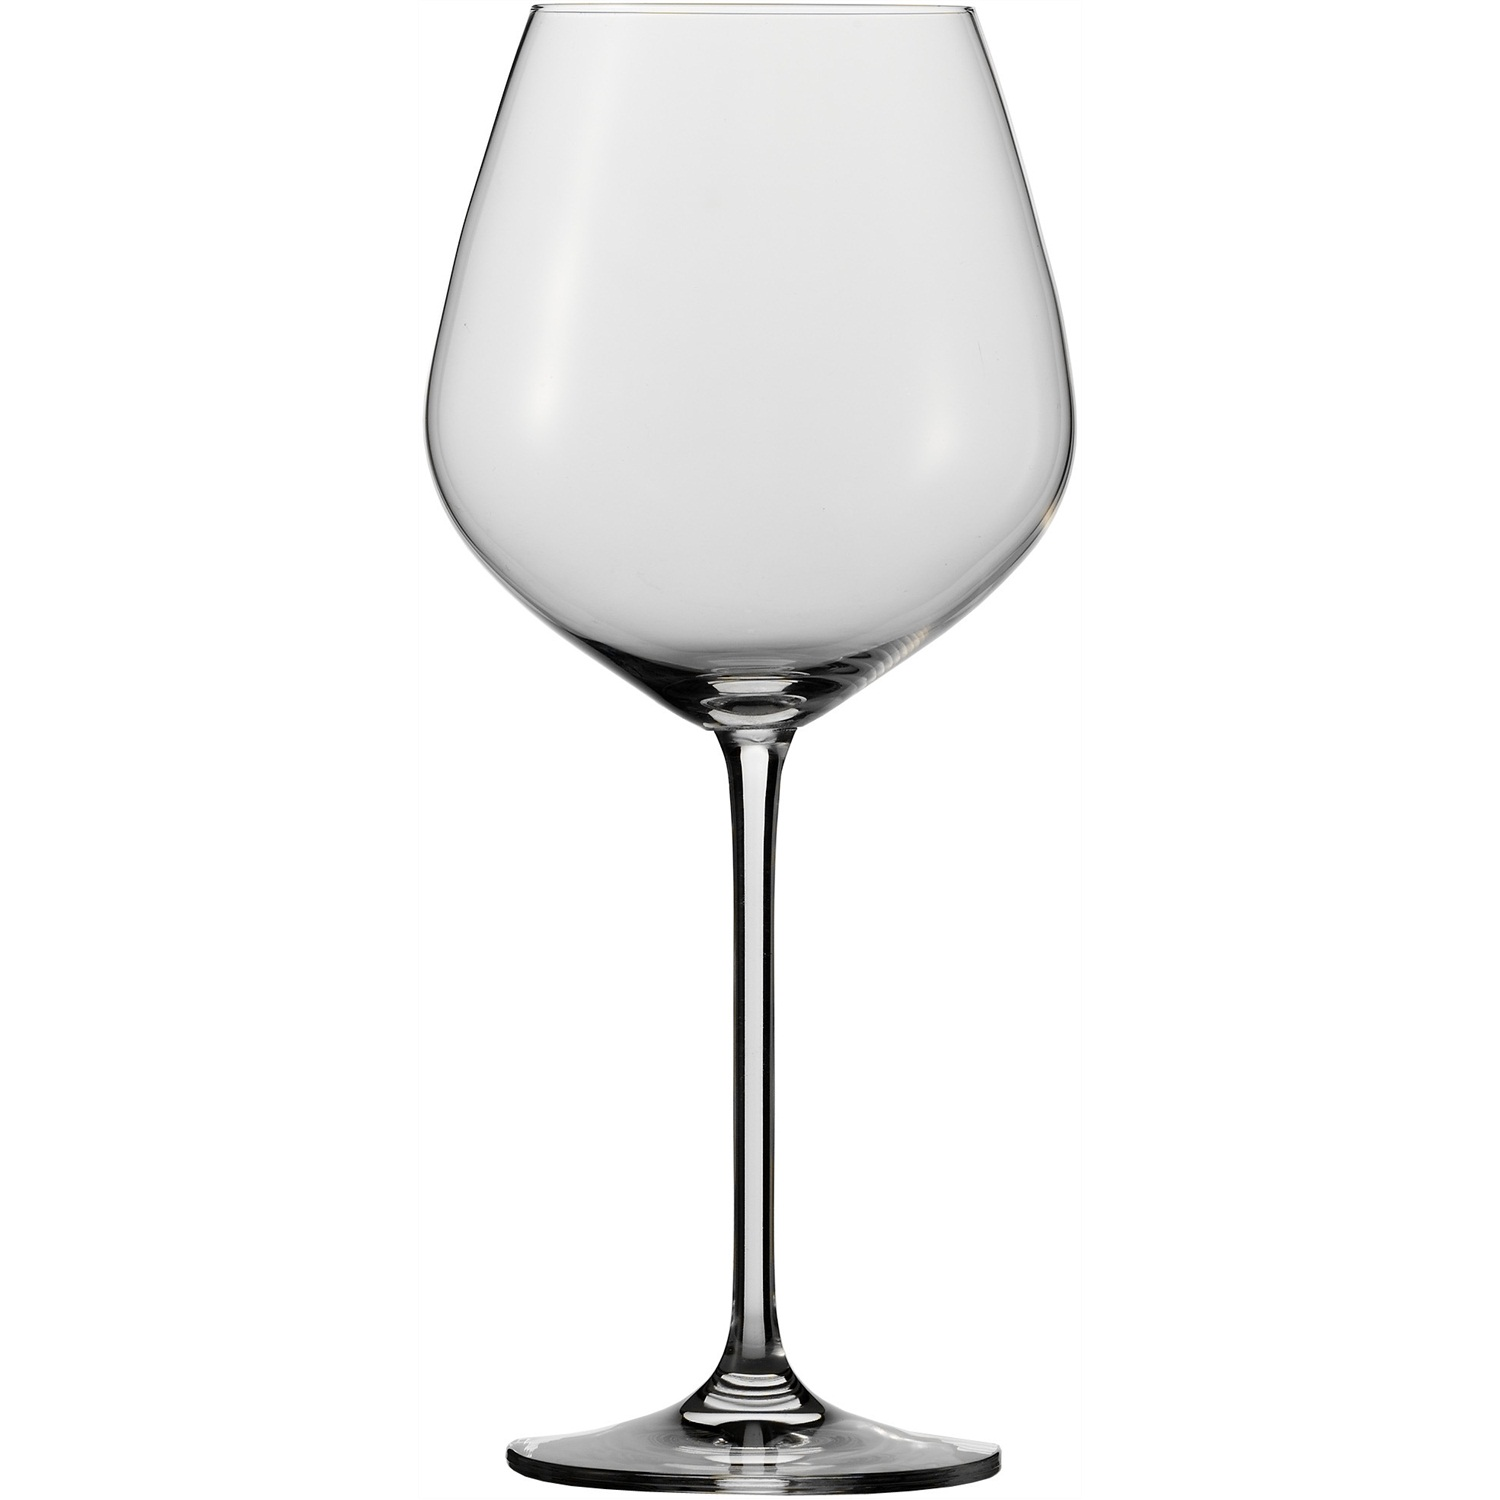 Schott Zwiesel Wine Glasses | Rosenthal Wine Glasses | Tritan Wine Glasses